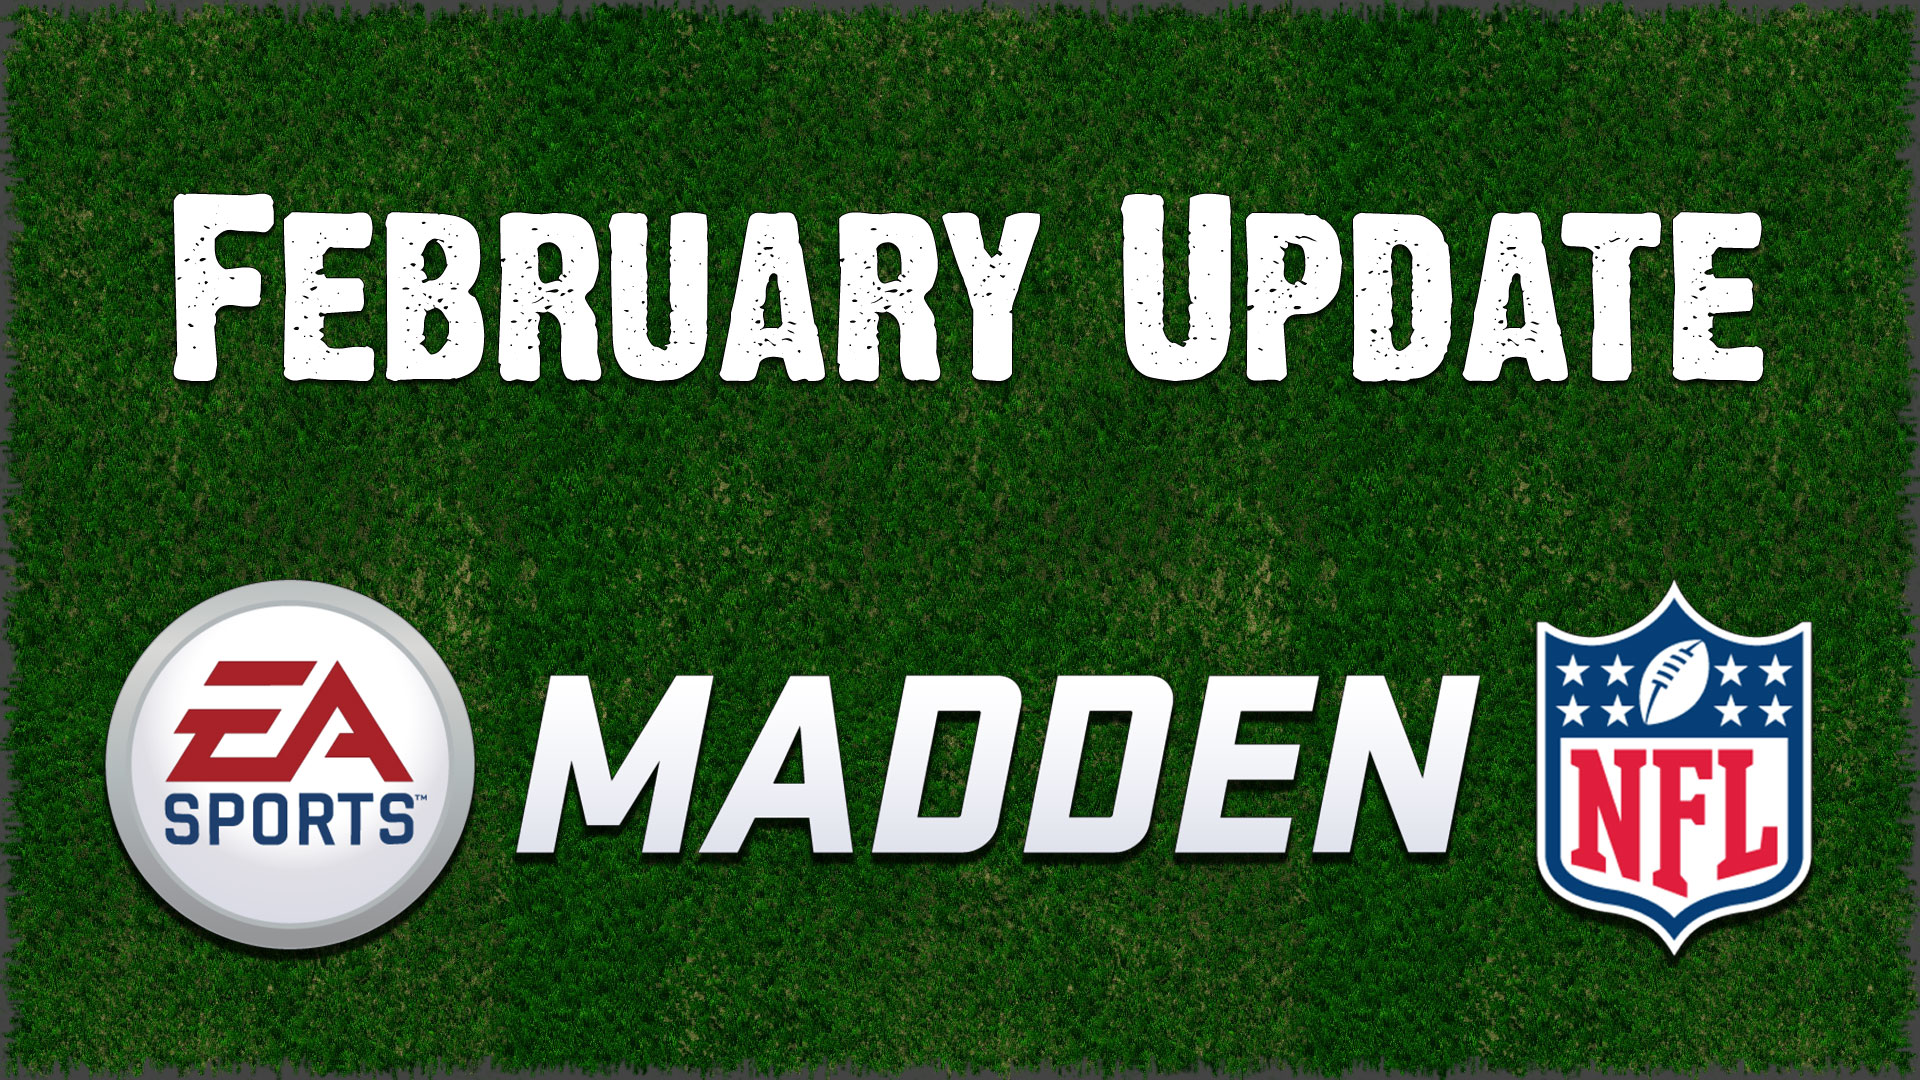 Madden NFL 18 February Update